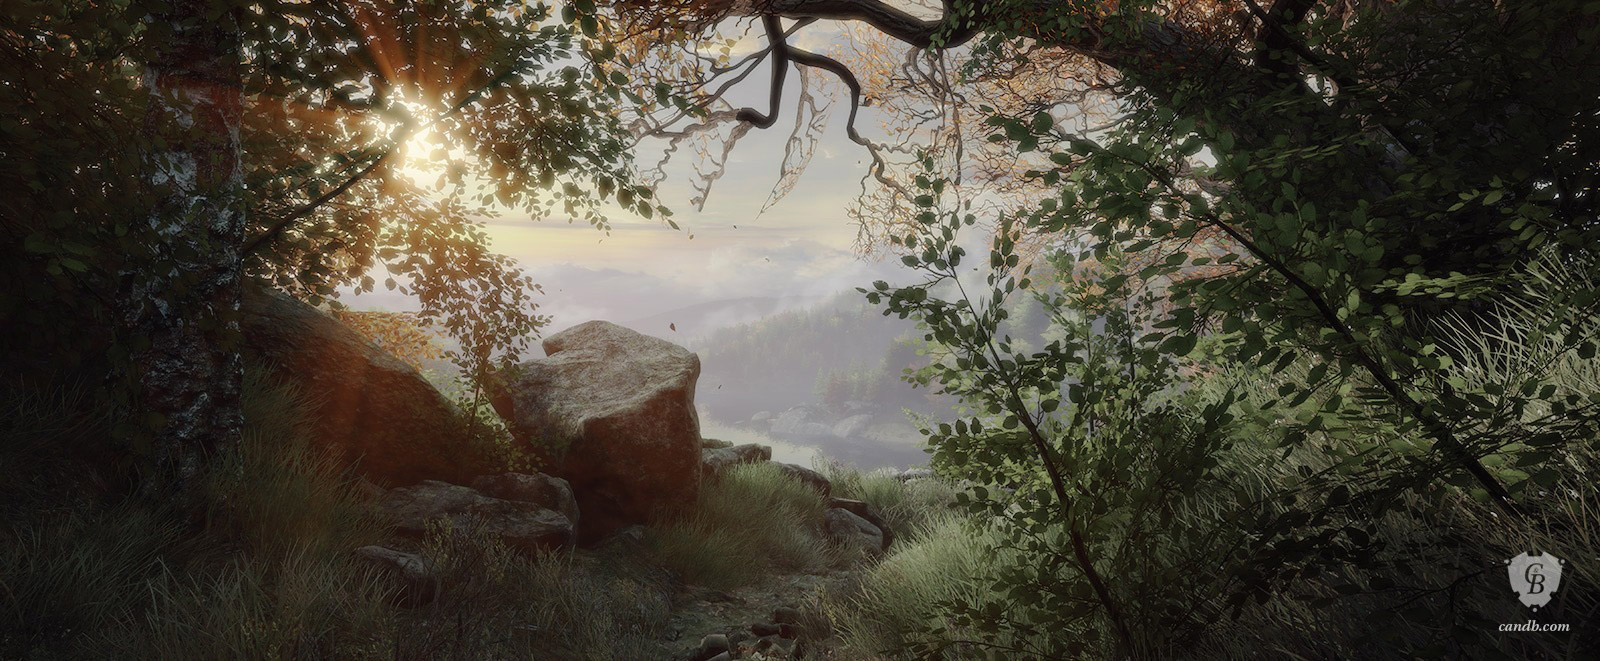 Vista Vanishing of Ethan Carter Print